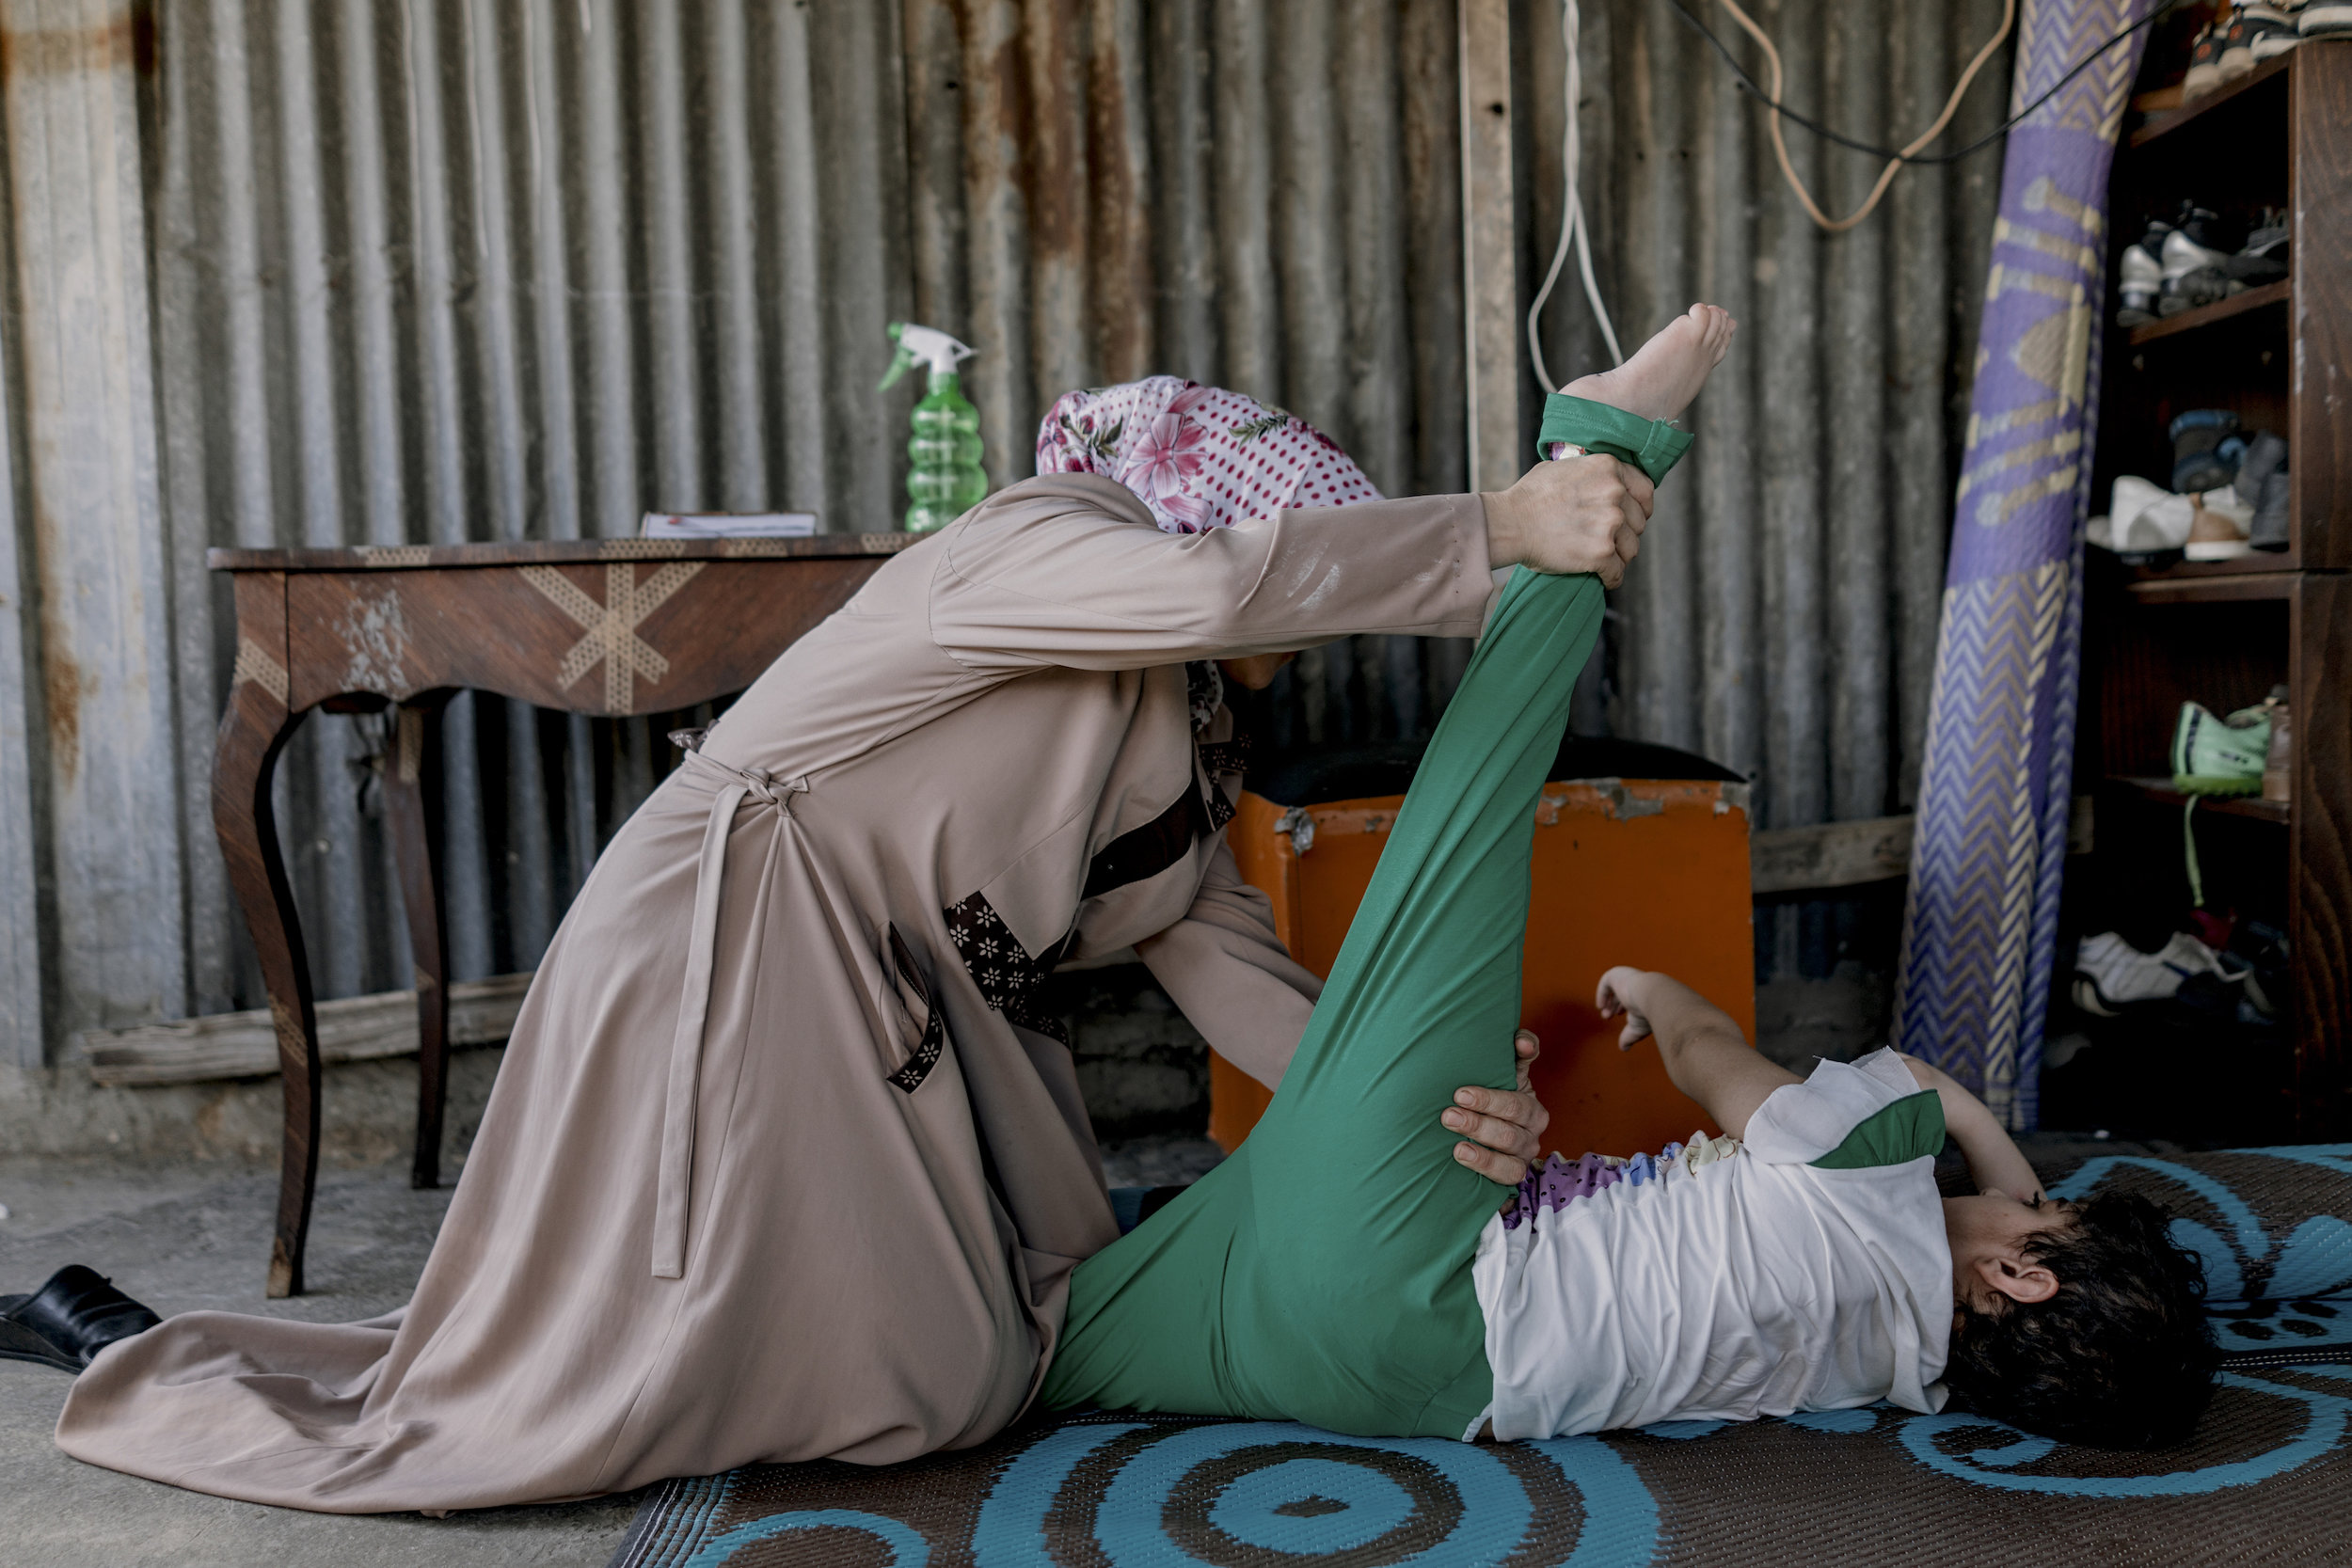 Leila El Saho gives physiotherapy to her daughter Sendos El Saho (12 years old). They live on the roof of an industrial building and they are composed of 7 members. Sindos is a girl suffering from a severe degree of cerebral palsy and epilepsy.